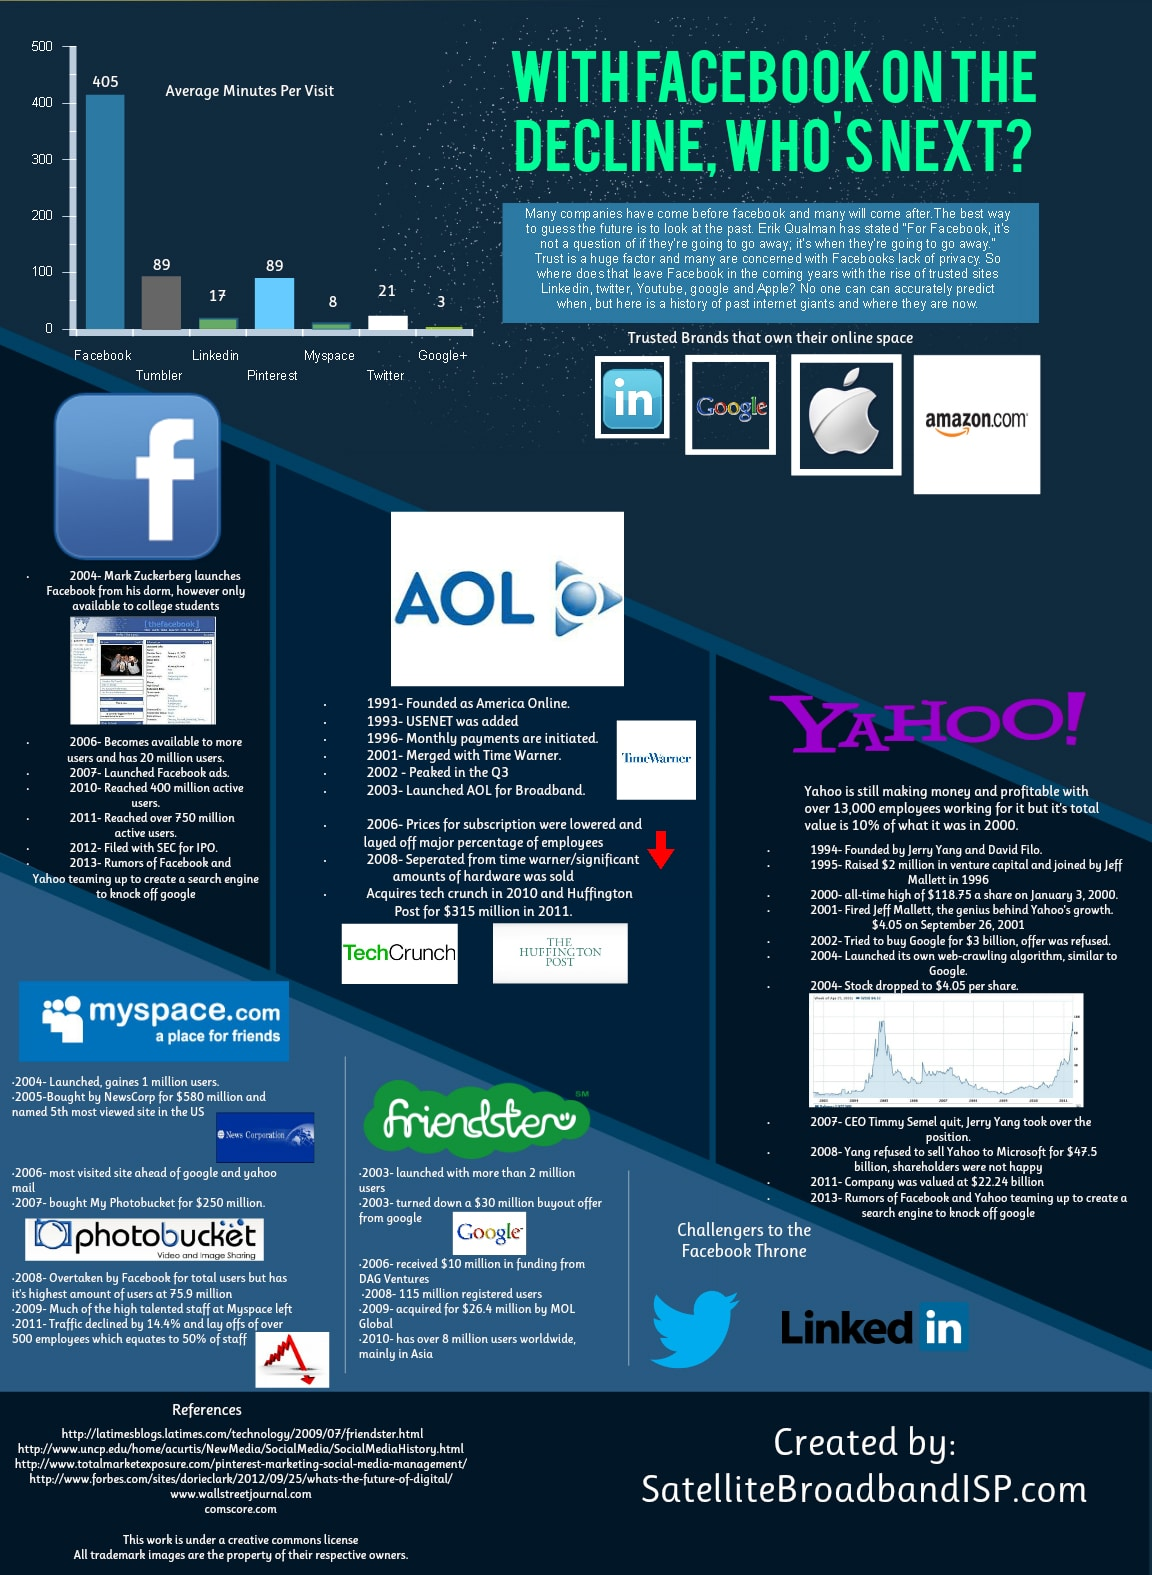 decline-of-facebook-usage-infographic